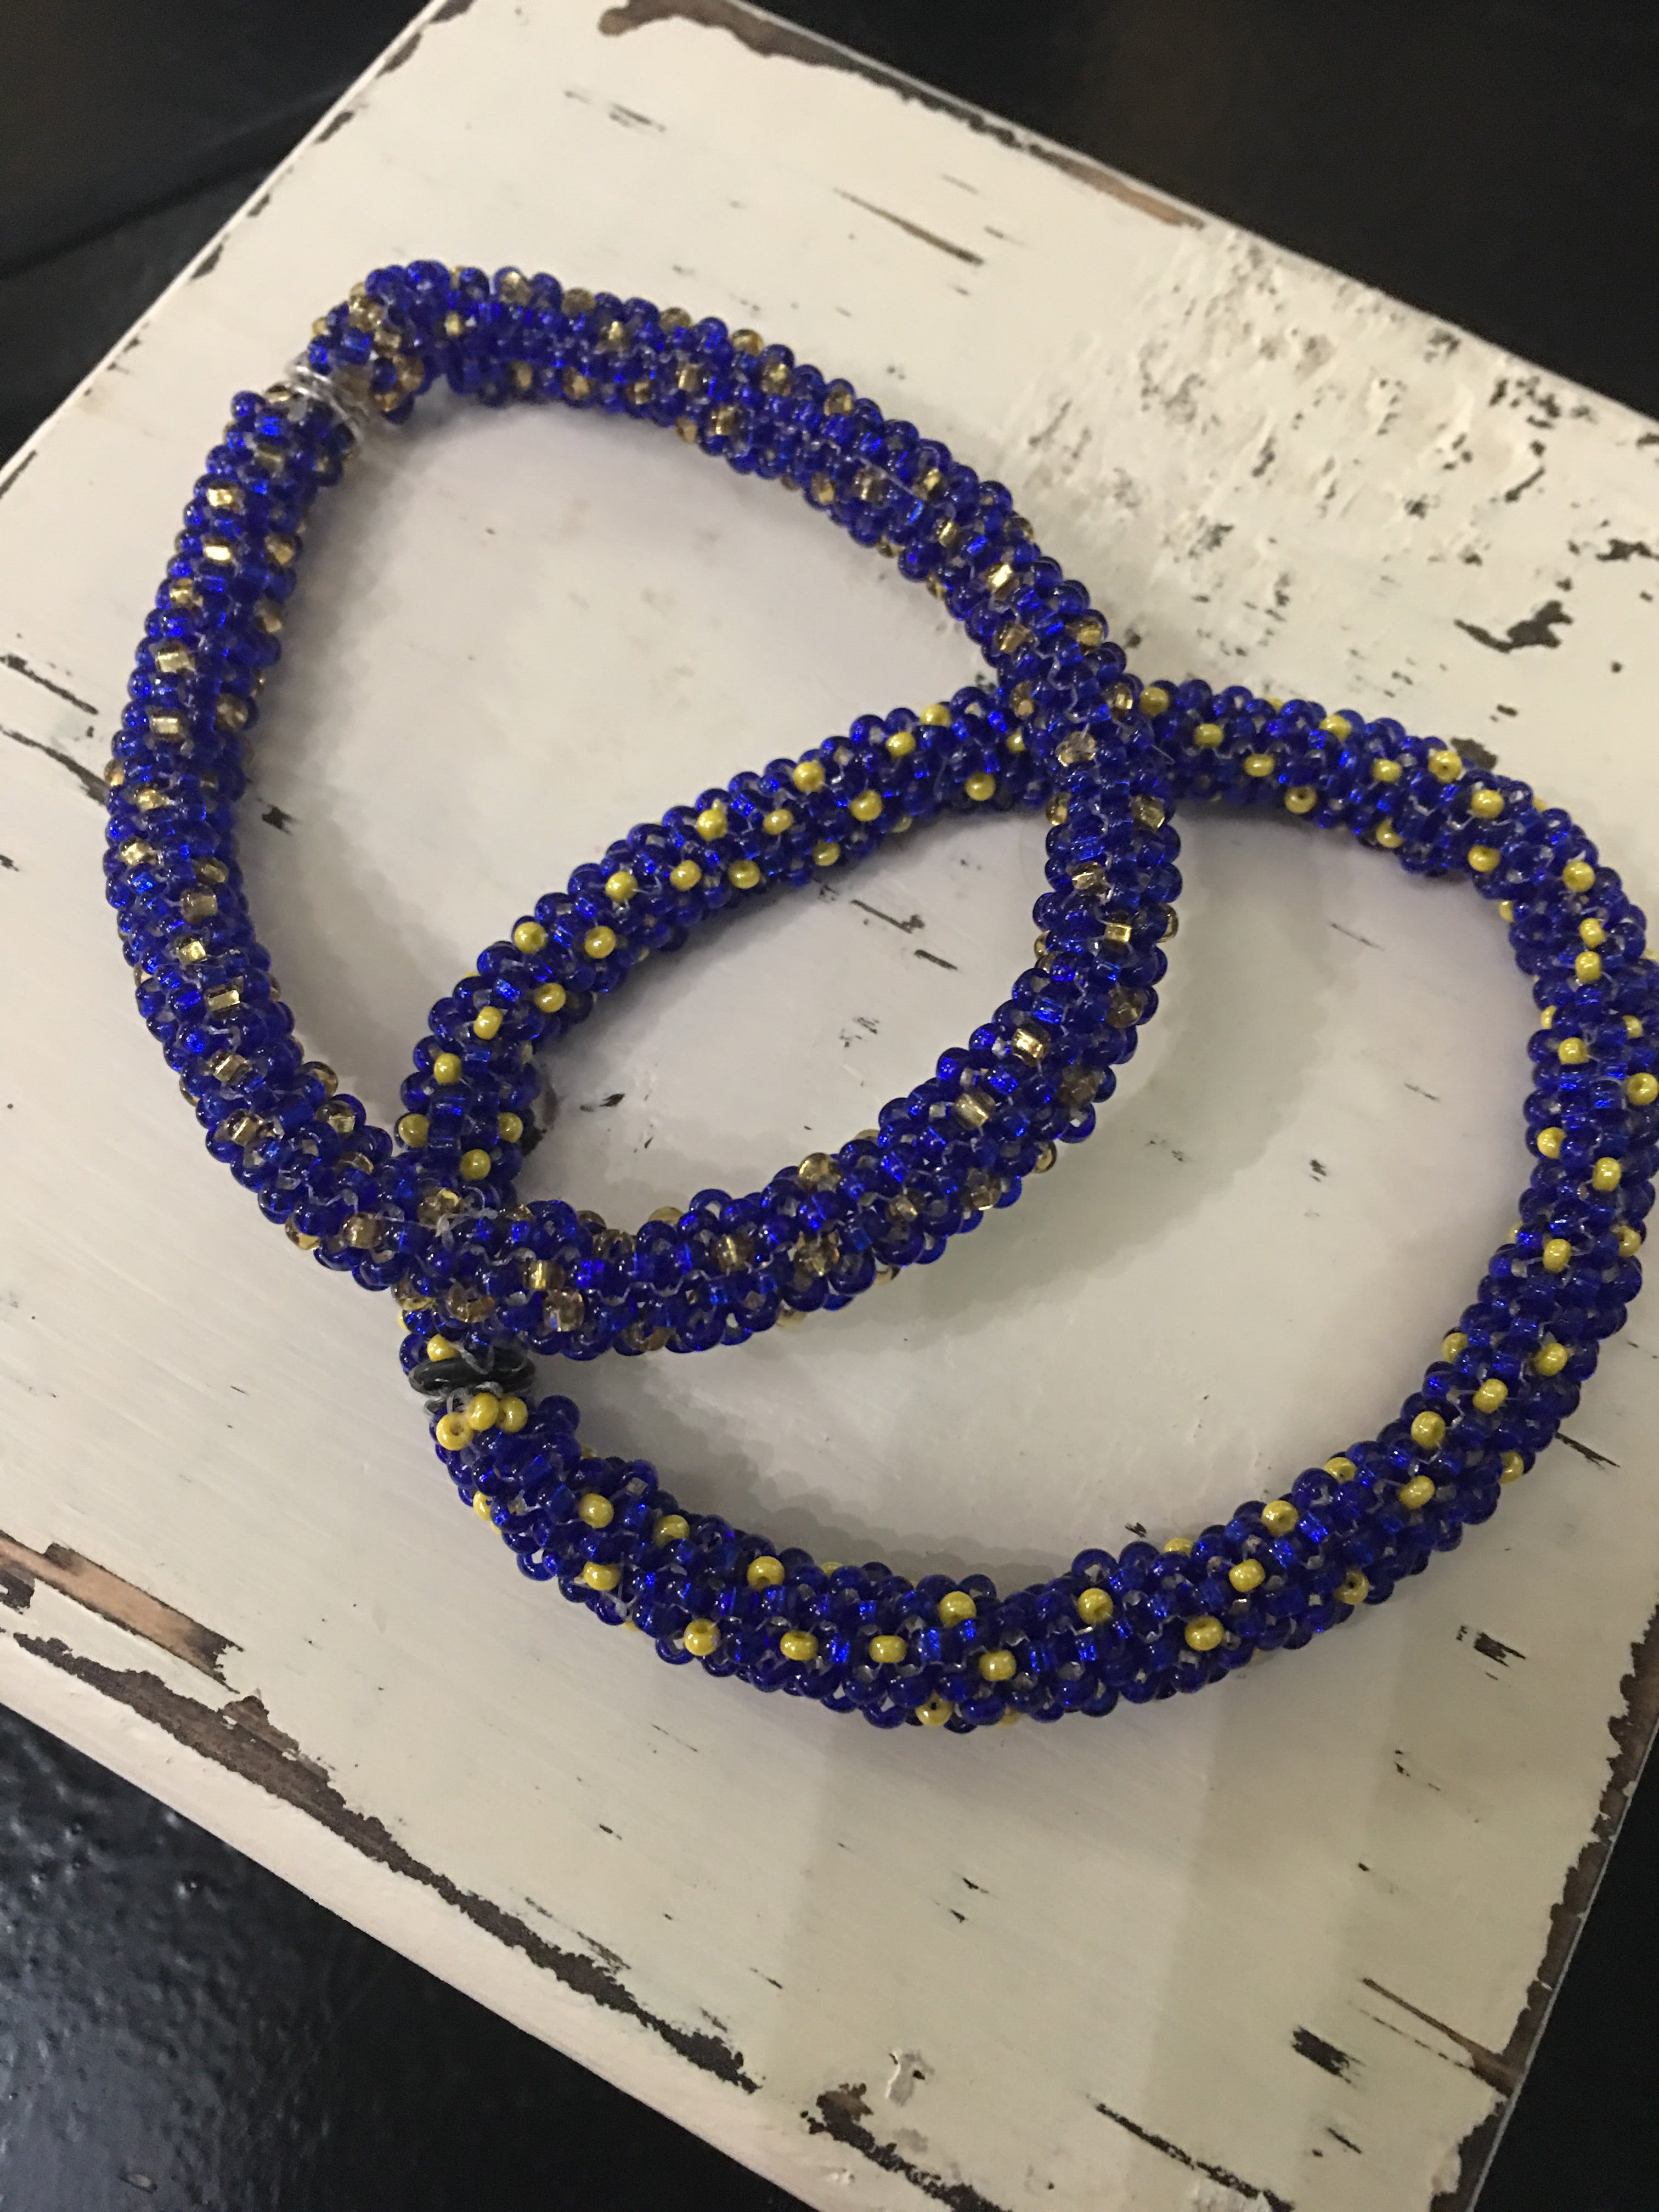 Seed Bead with Clasp Bracelets